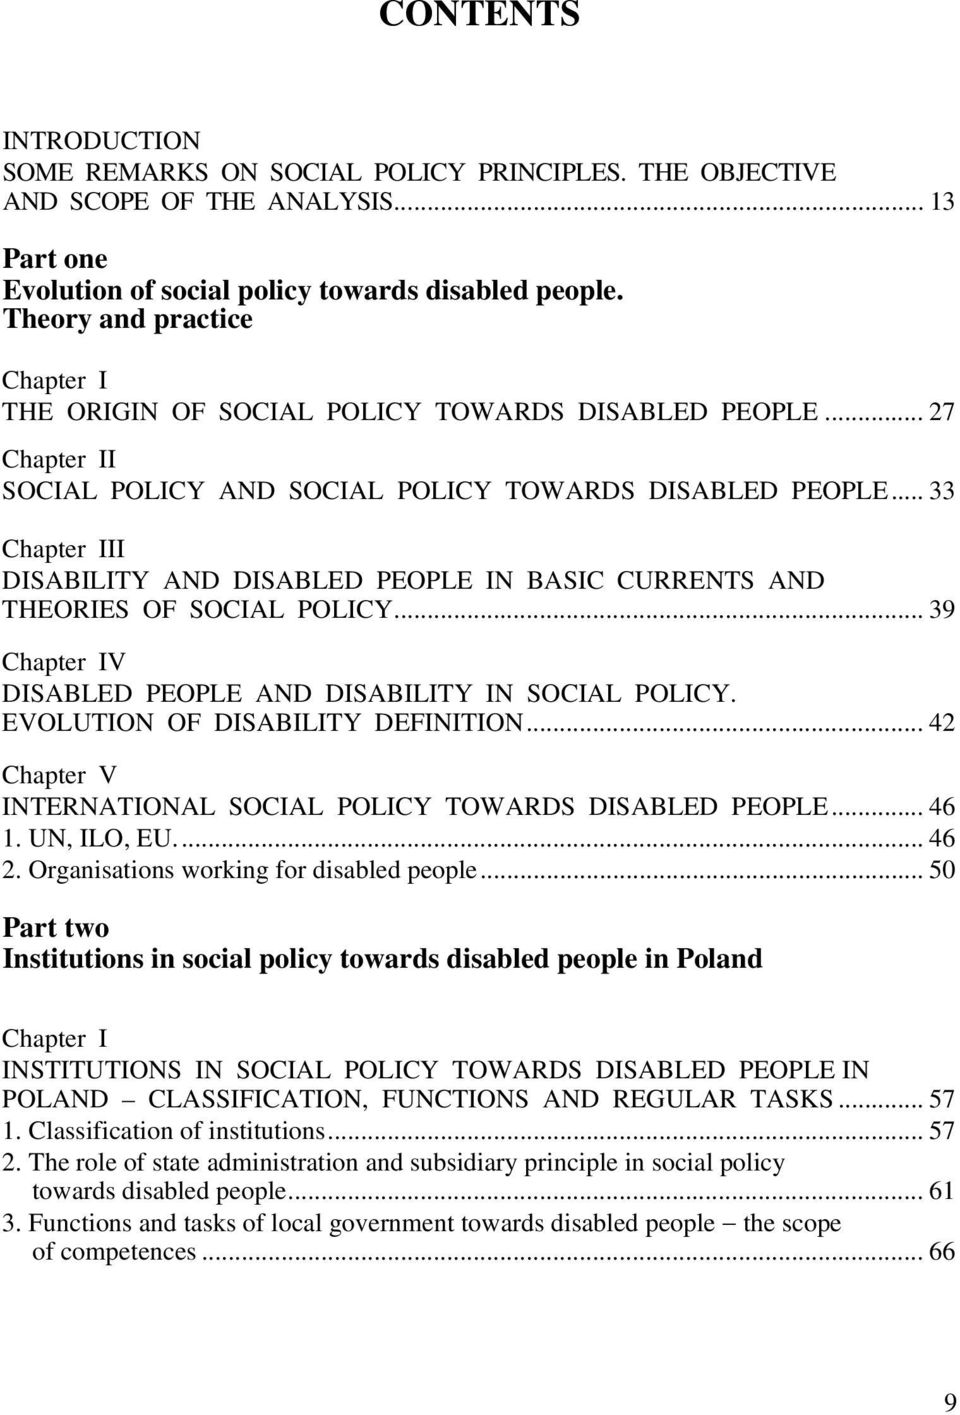 .. 33 Chapter III DISABILITY AND DISABLED PEOPLE IN BASIC CURRENTS AND THEORIES OF SOCIAL POLICY... 39 Chapter IV DISABLED PEOPLE AND DISABILITY IN SOCIAL POLICY. EVOLUTION OF DISABILITY DEFINITION.